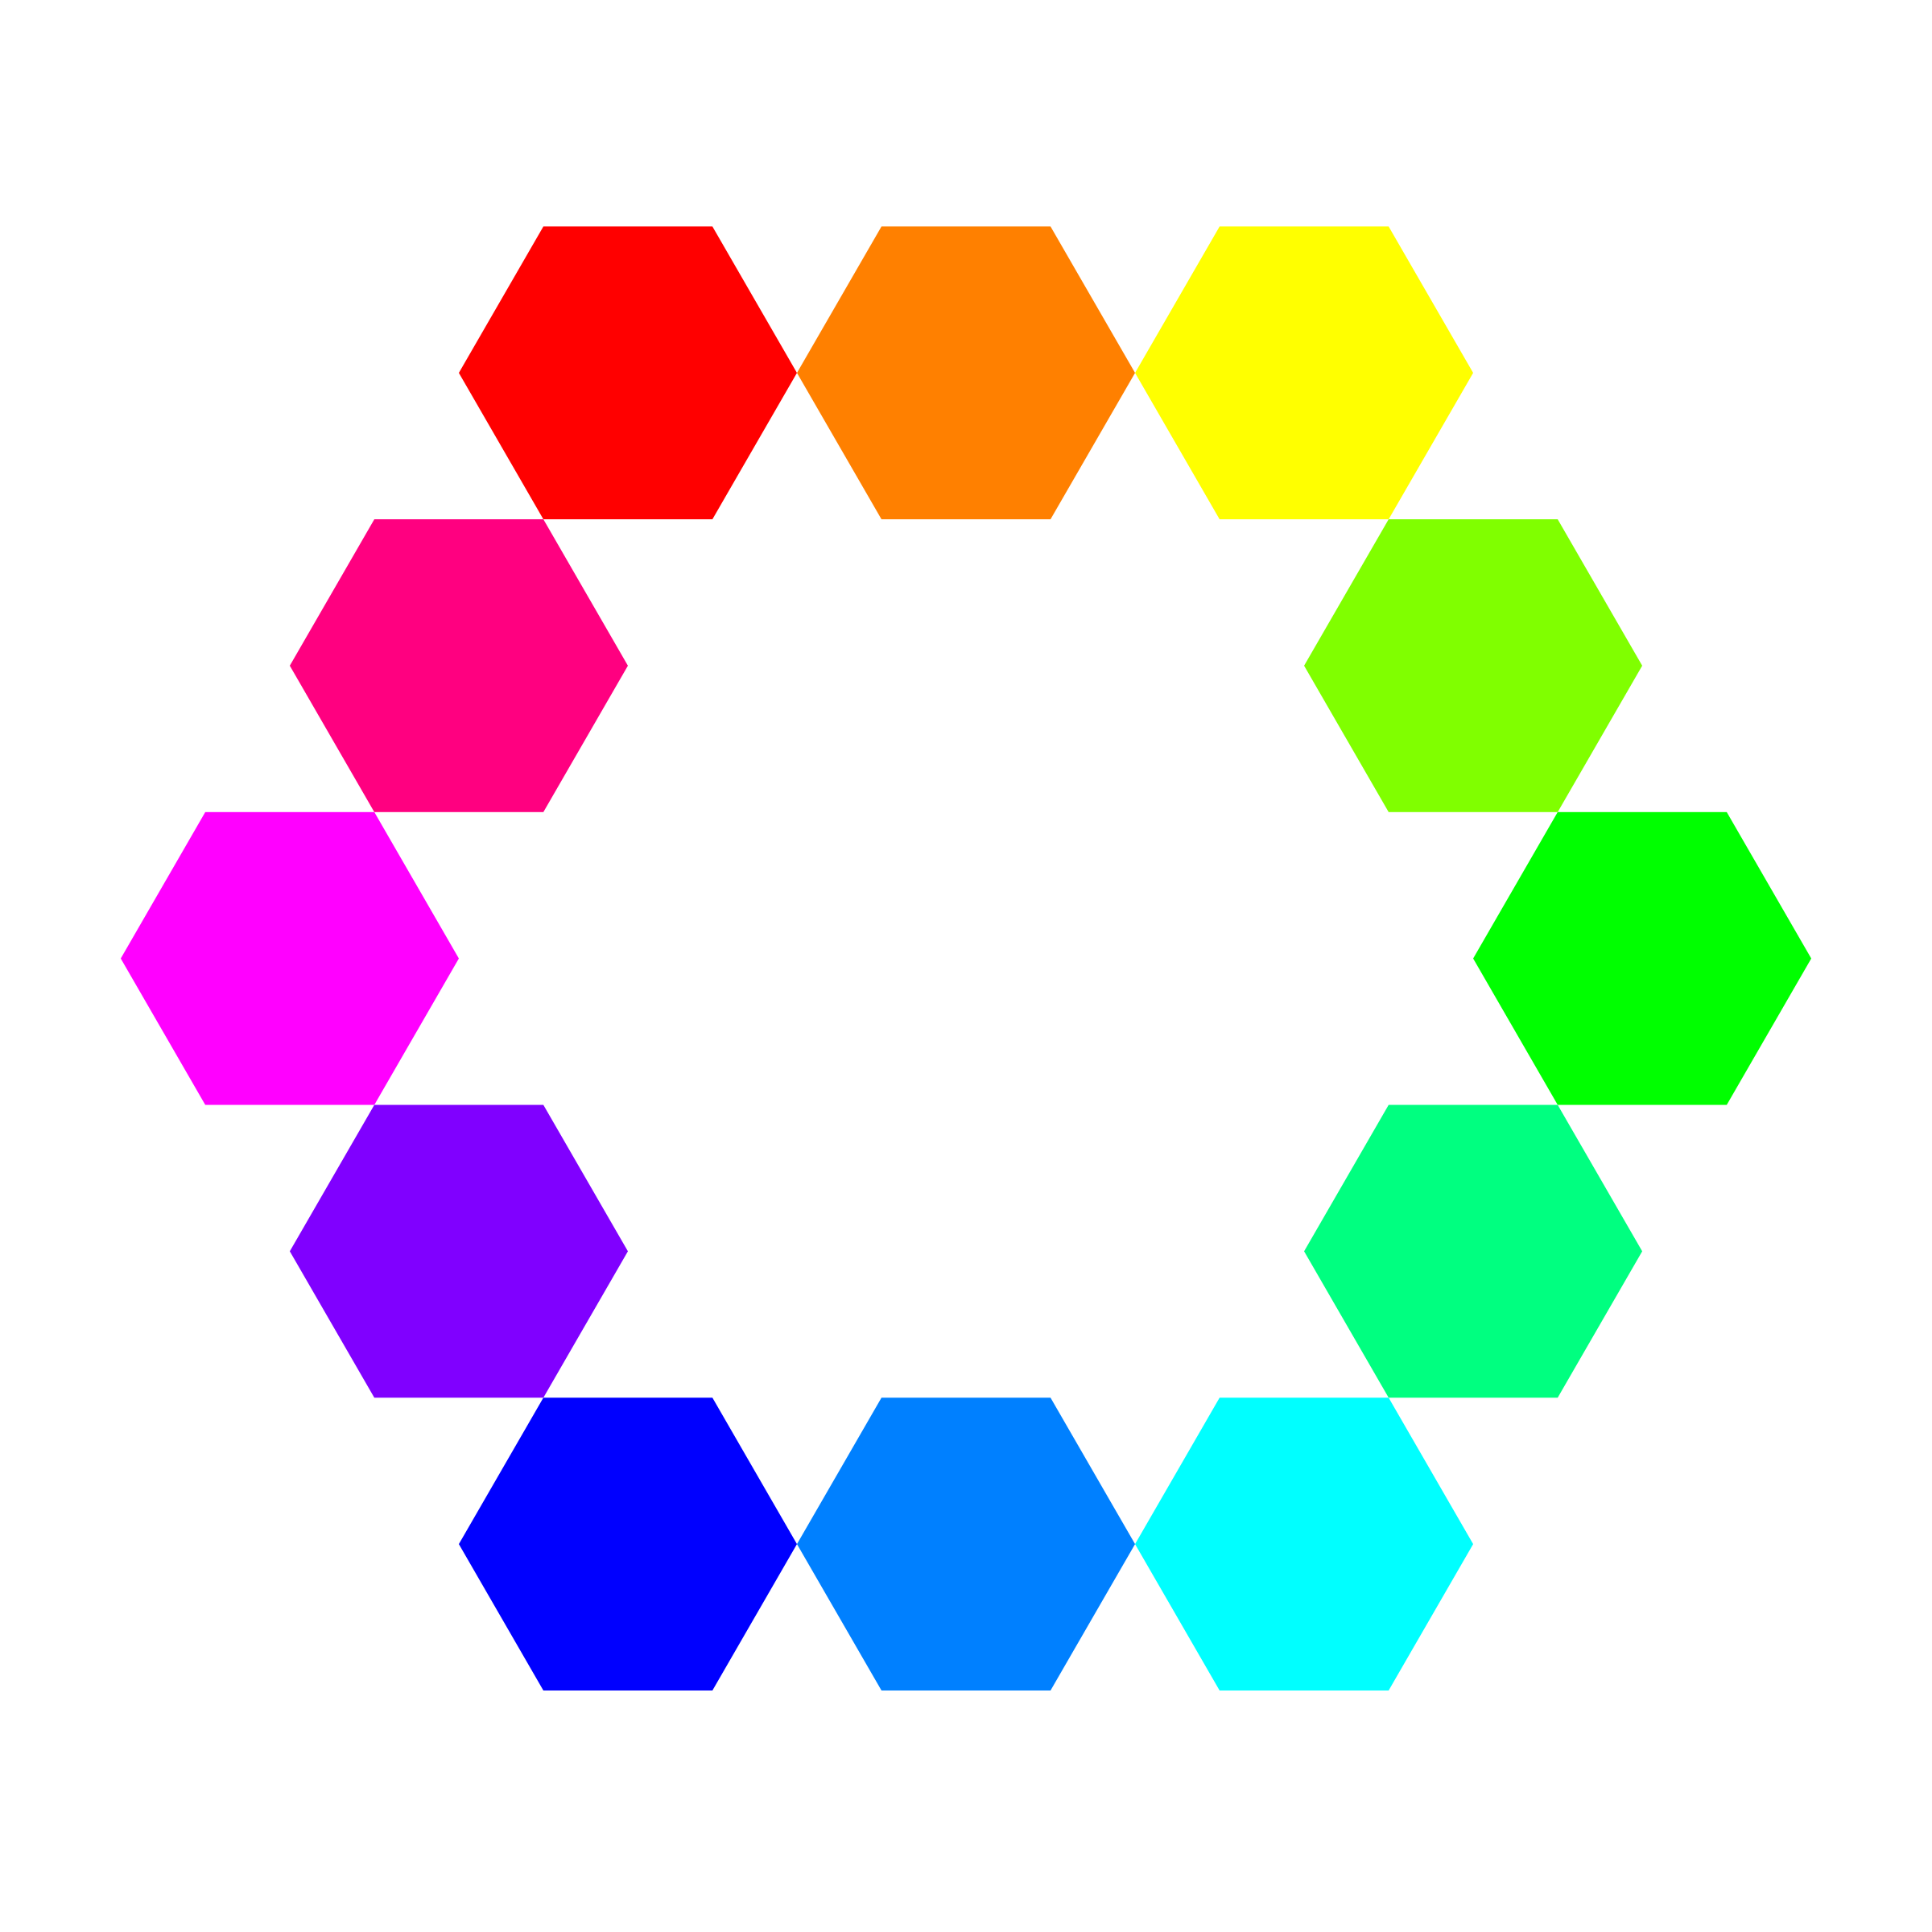 1 point 12 connected hexagons by 10binary